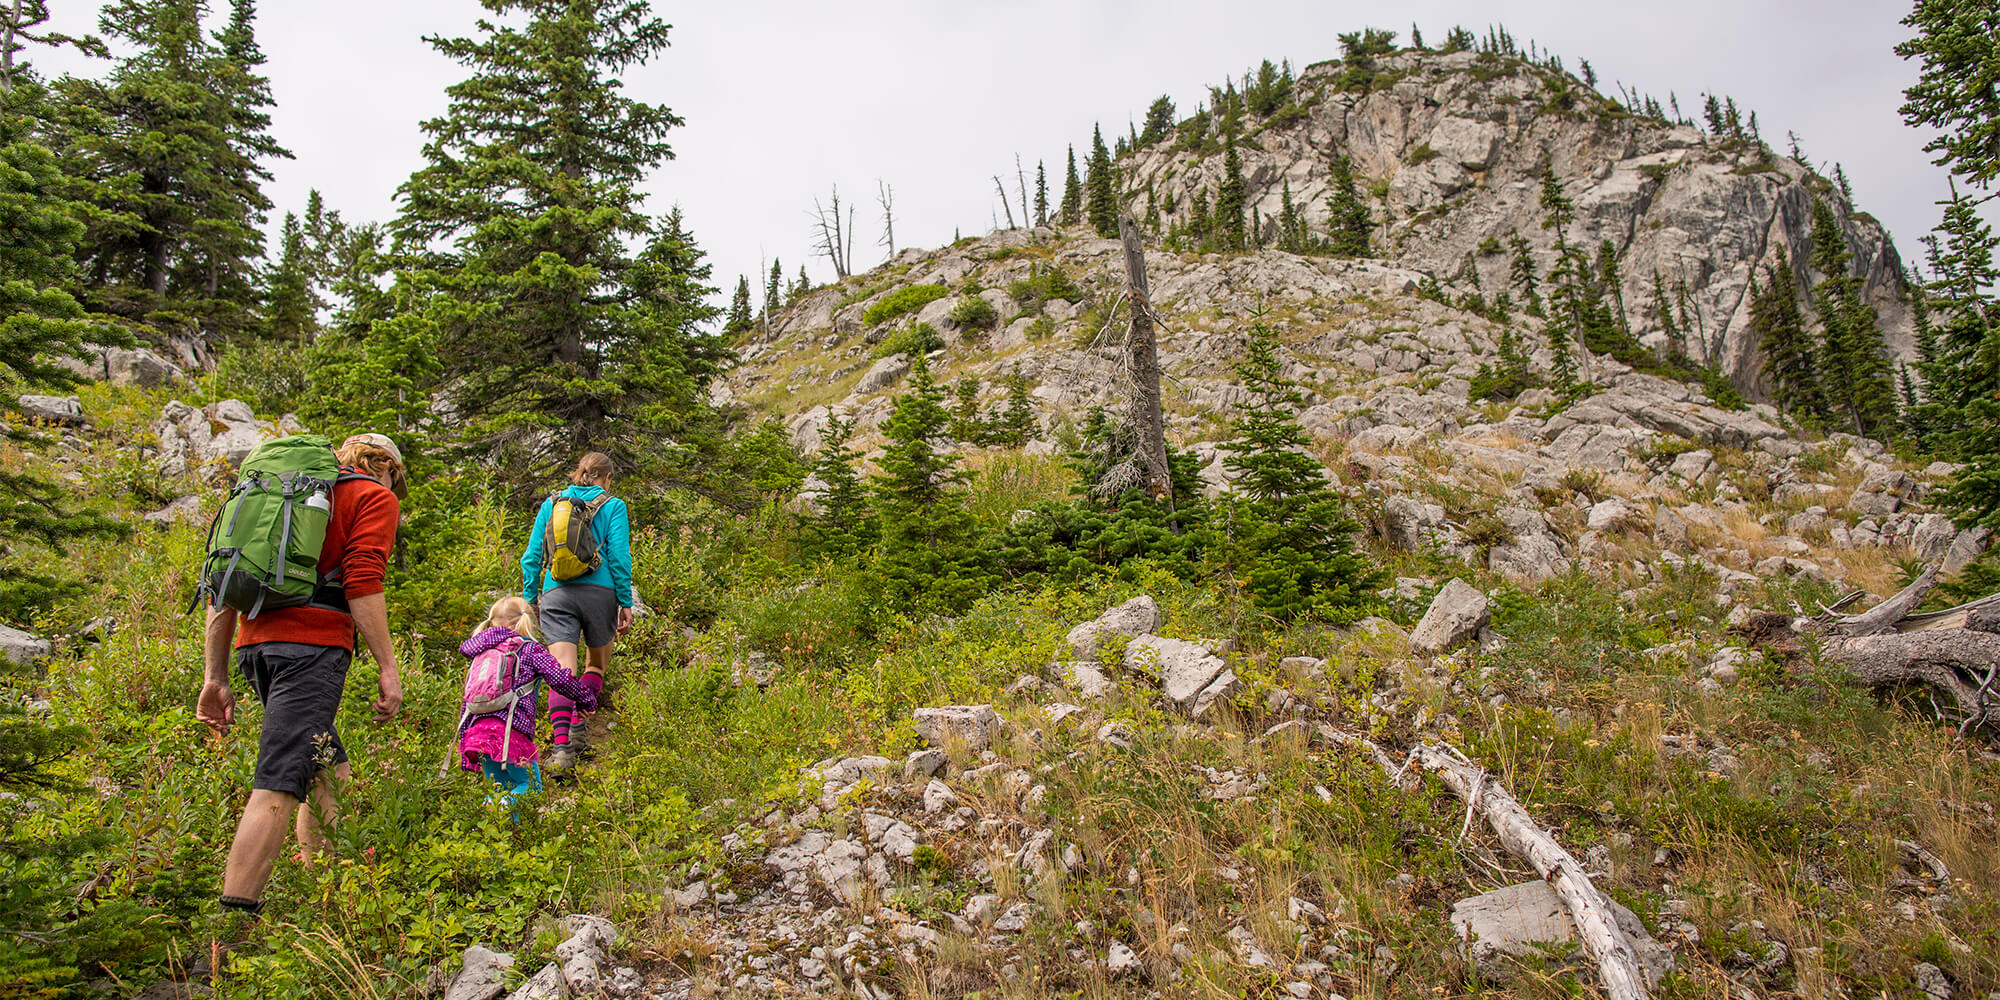 A man, woman, and child hiking in Fernie, BC.